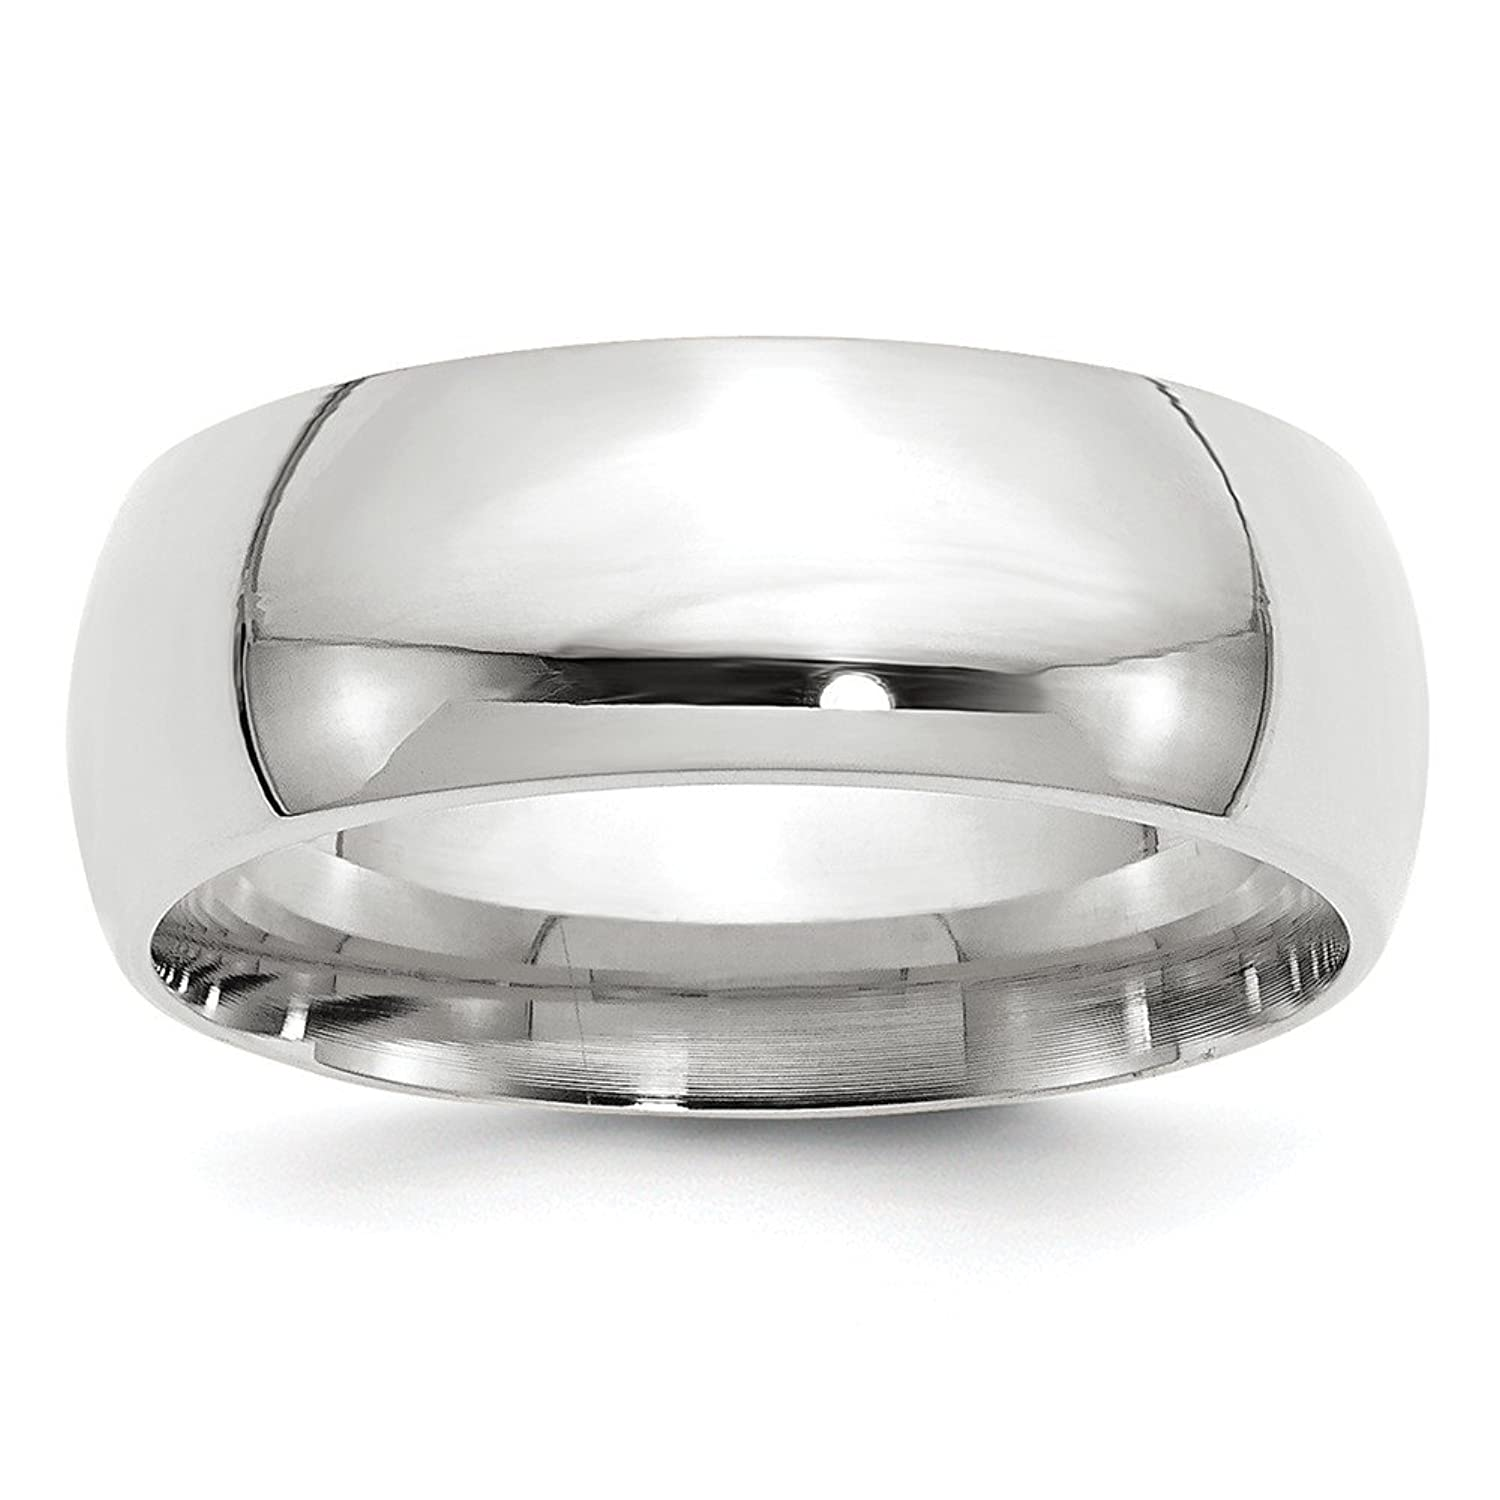 10k White Gold 8mm Standard Comfort Fit Band Ring Size 9.5